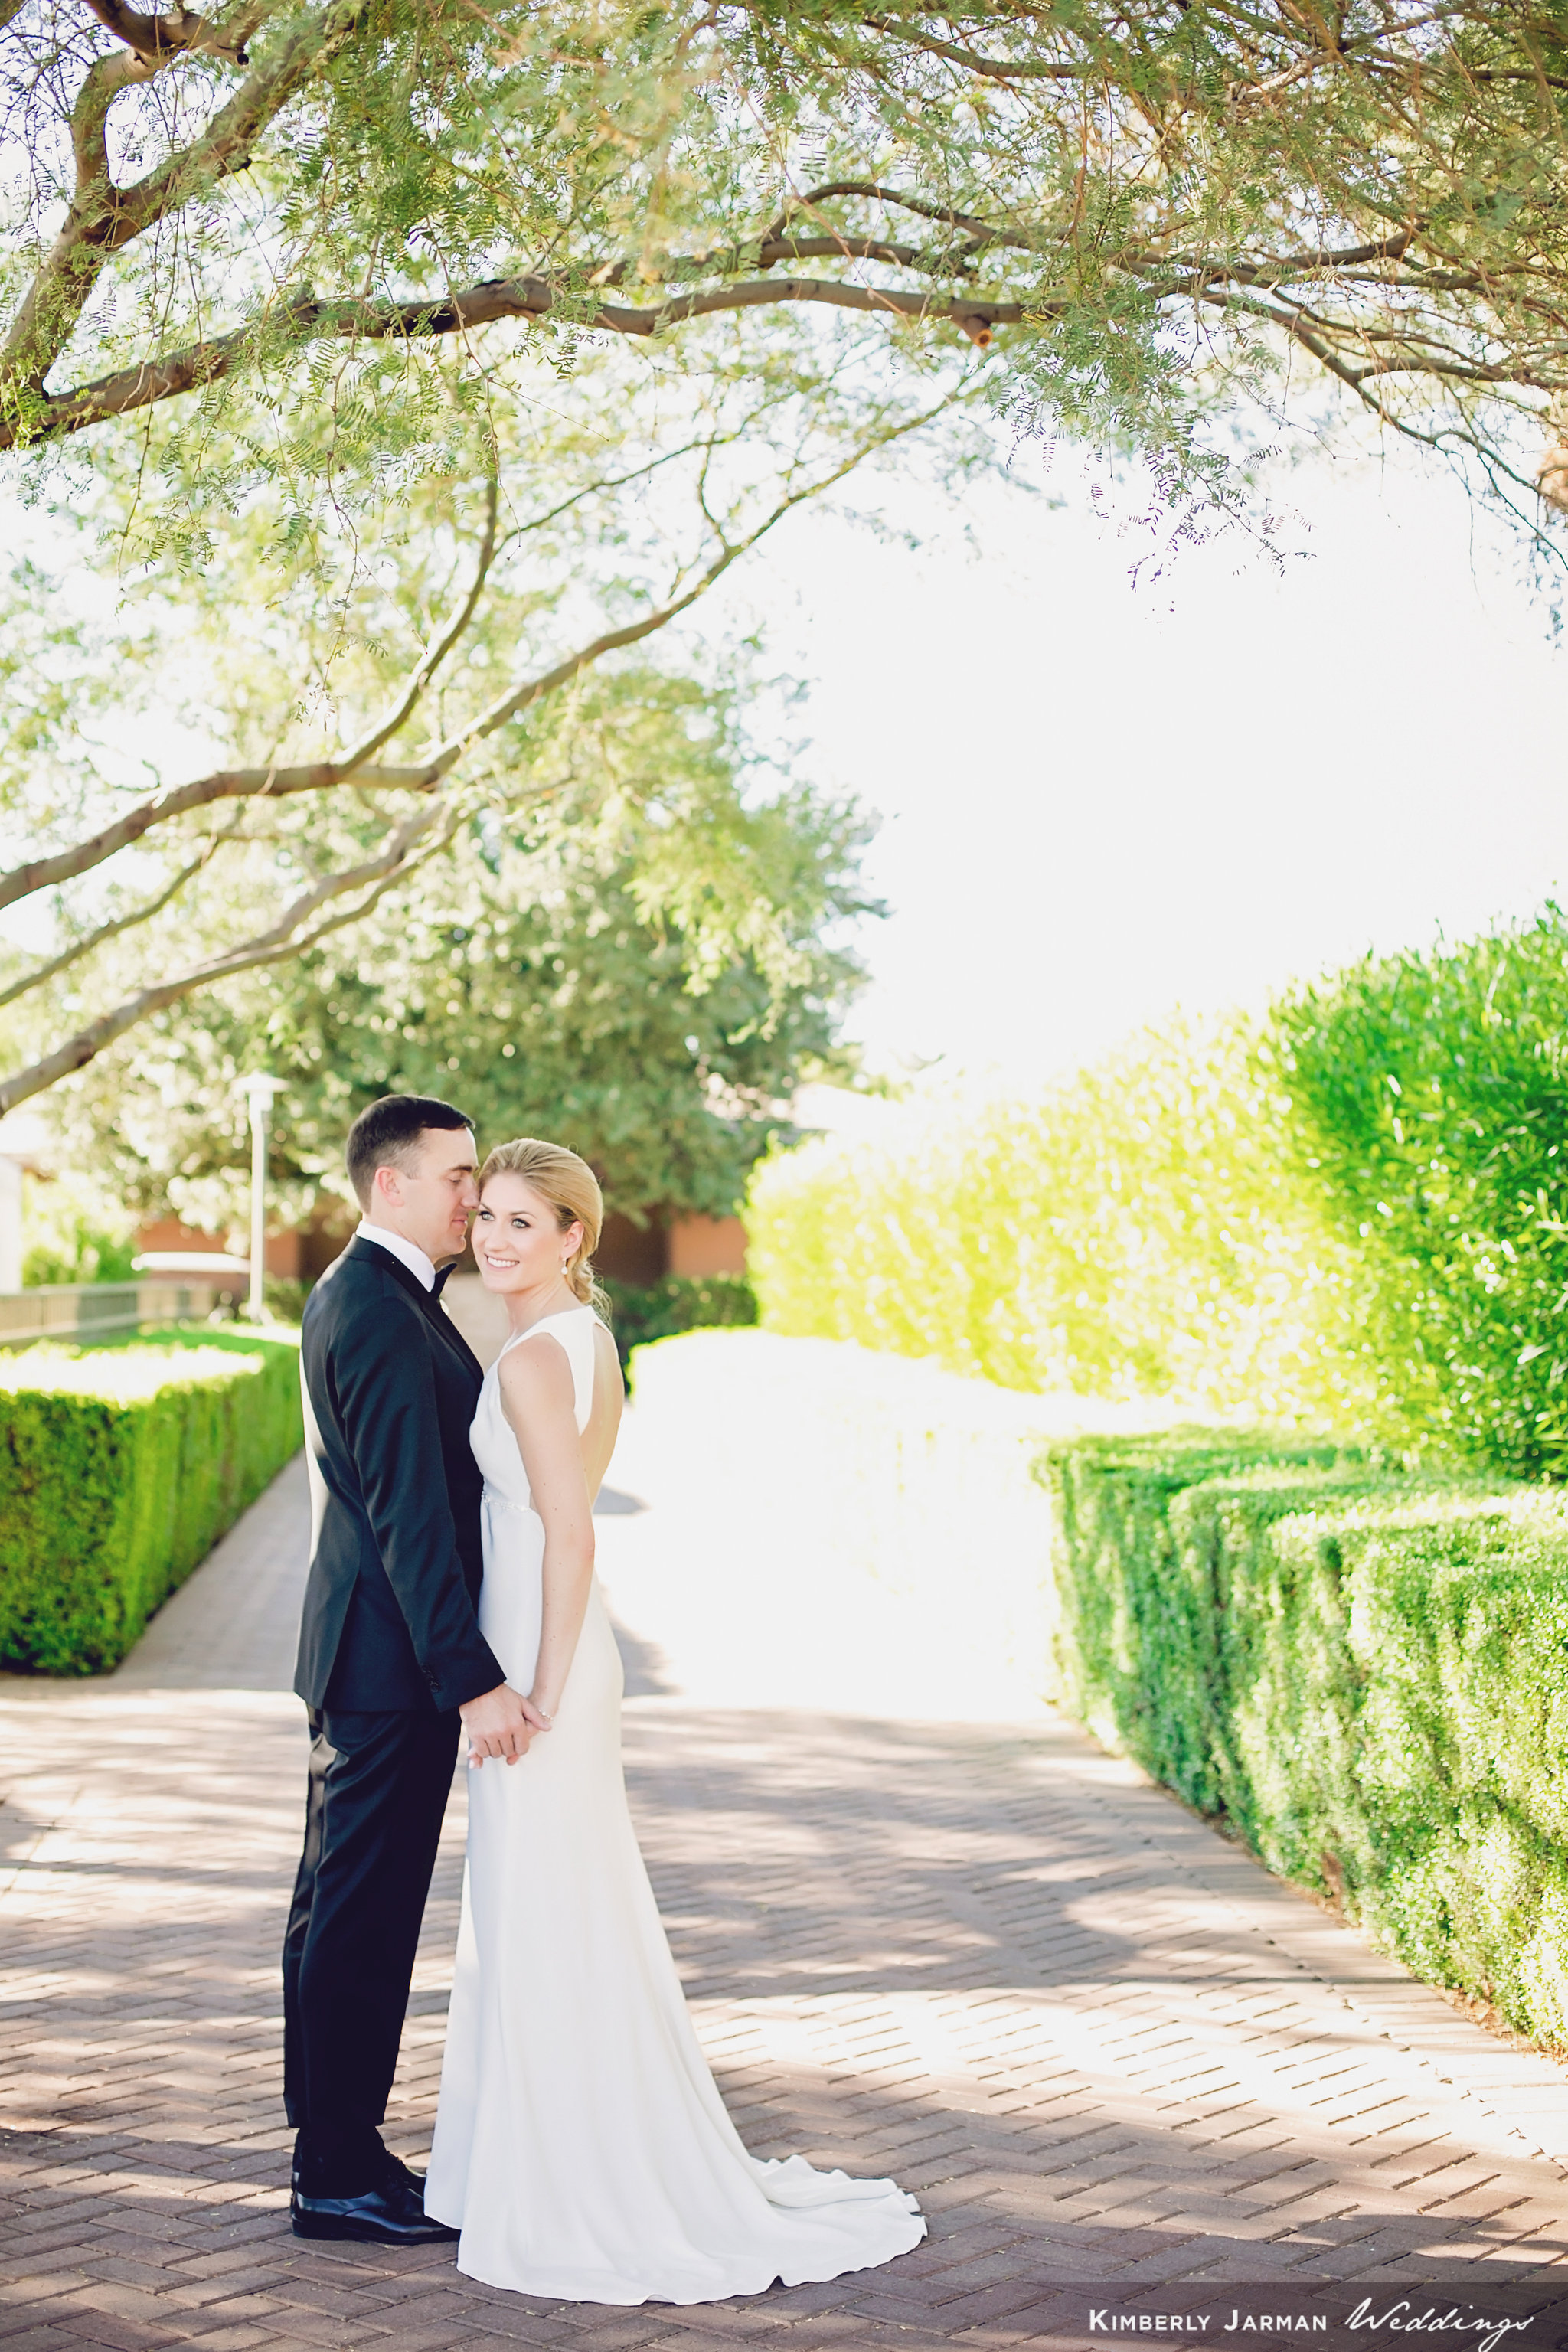 Classic, elegant wedding, white and gold wedding, bride and groom first look, bride and groom photos